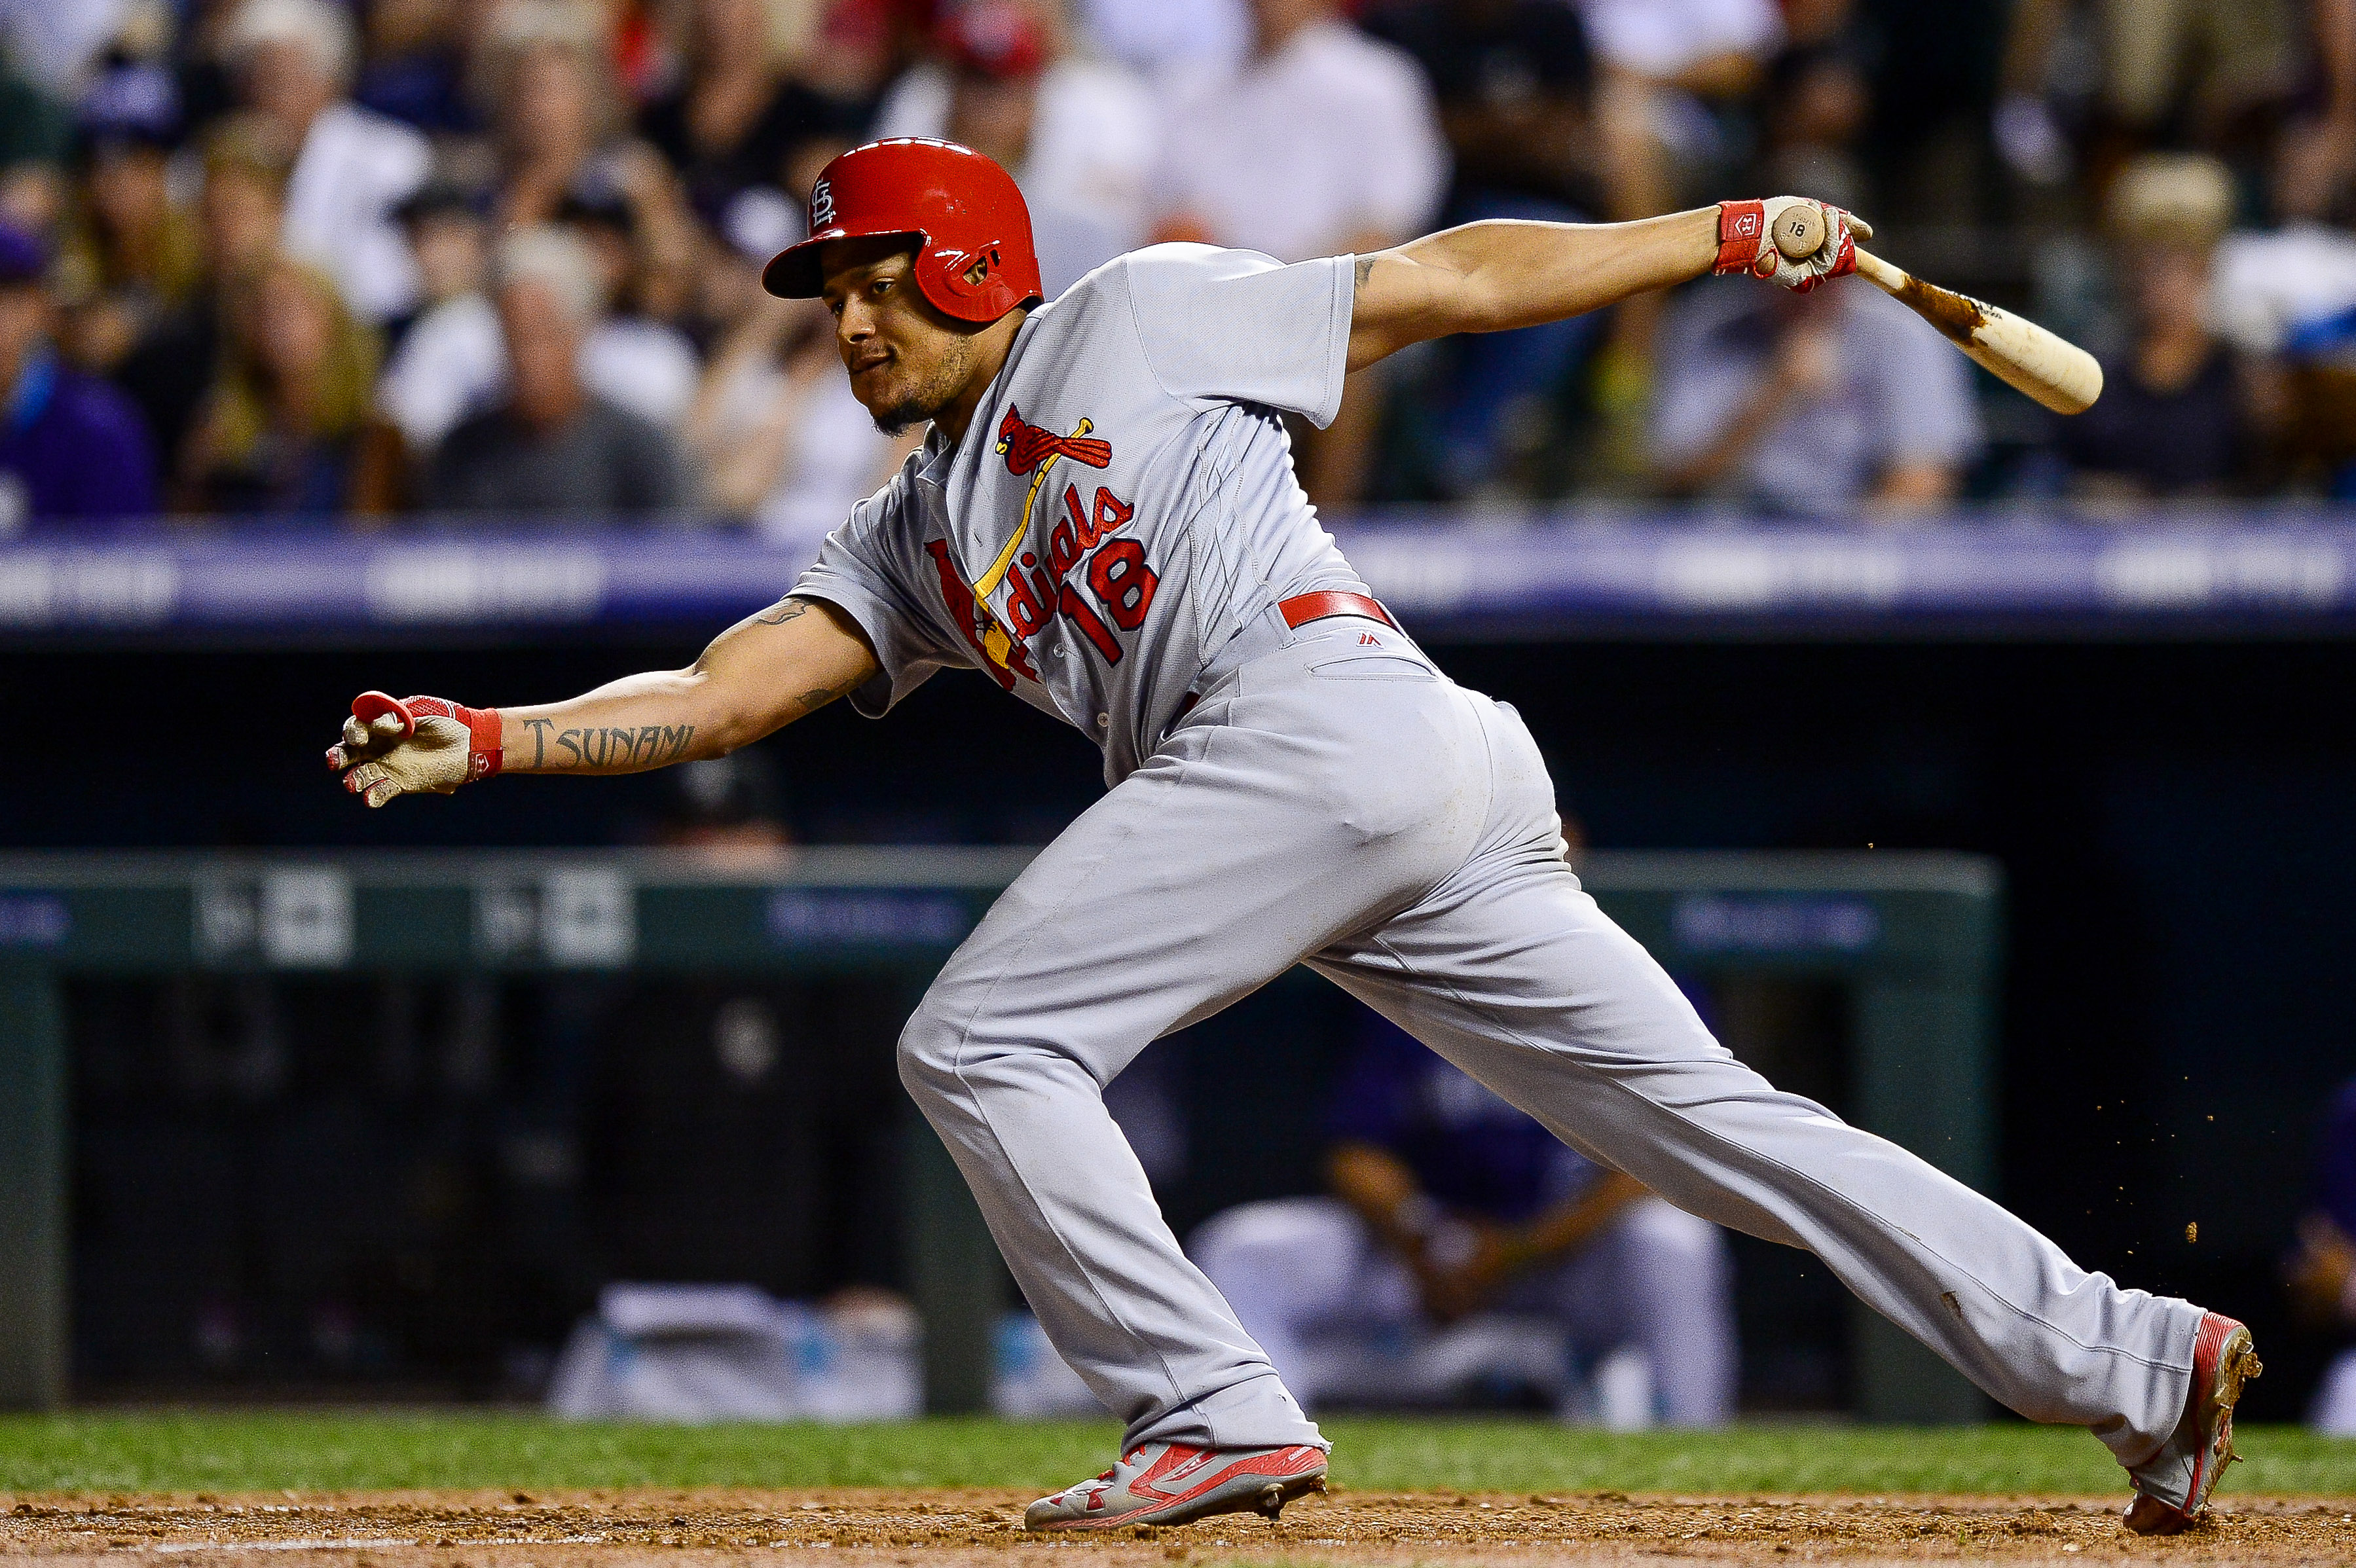 Wainwright drives in 4 as Cards beat Rockies 10-5